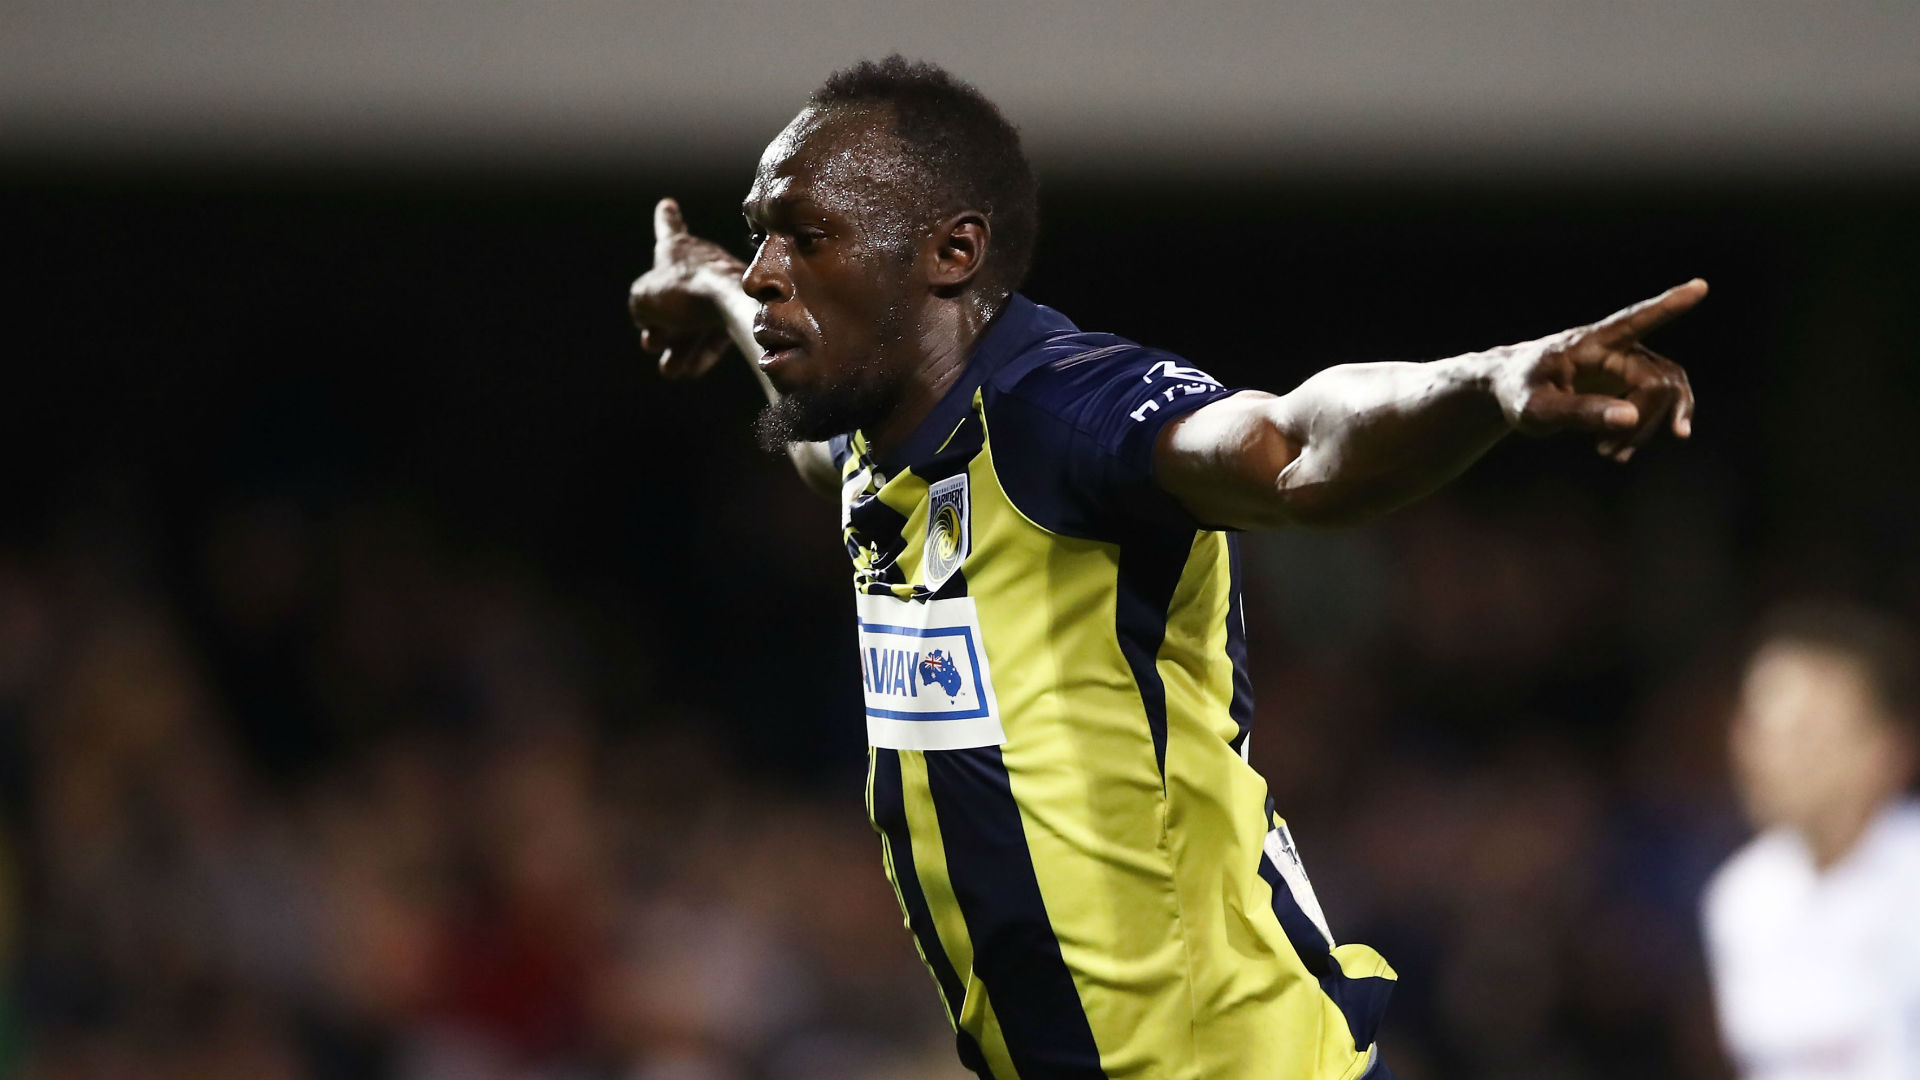 Usain Bolt scored two goals in his first professional soccer start